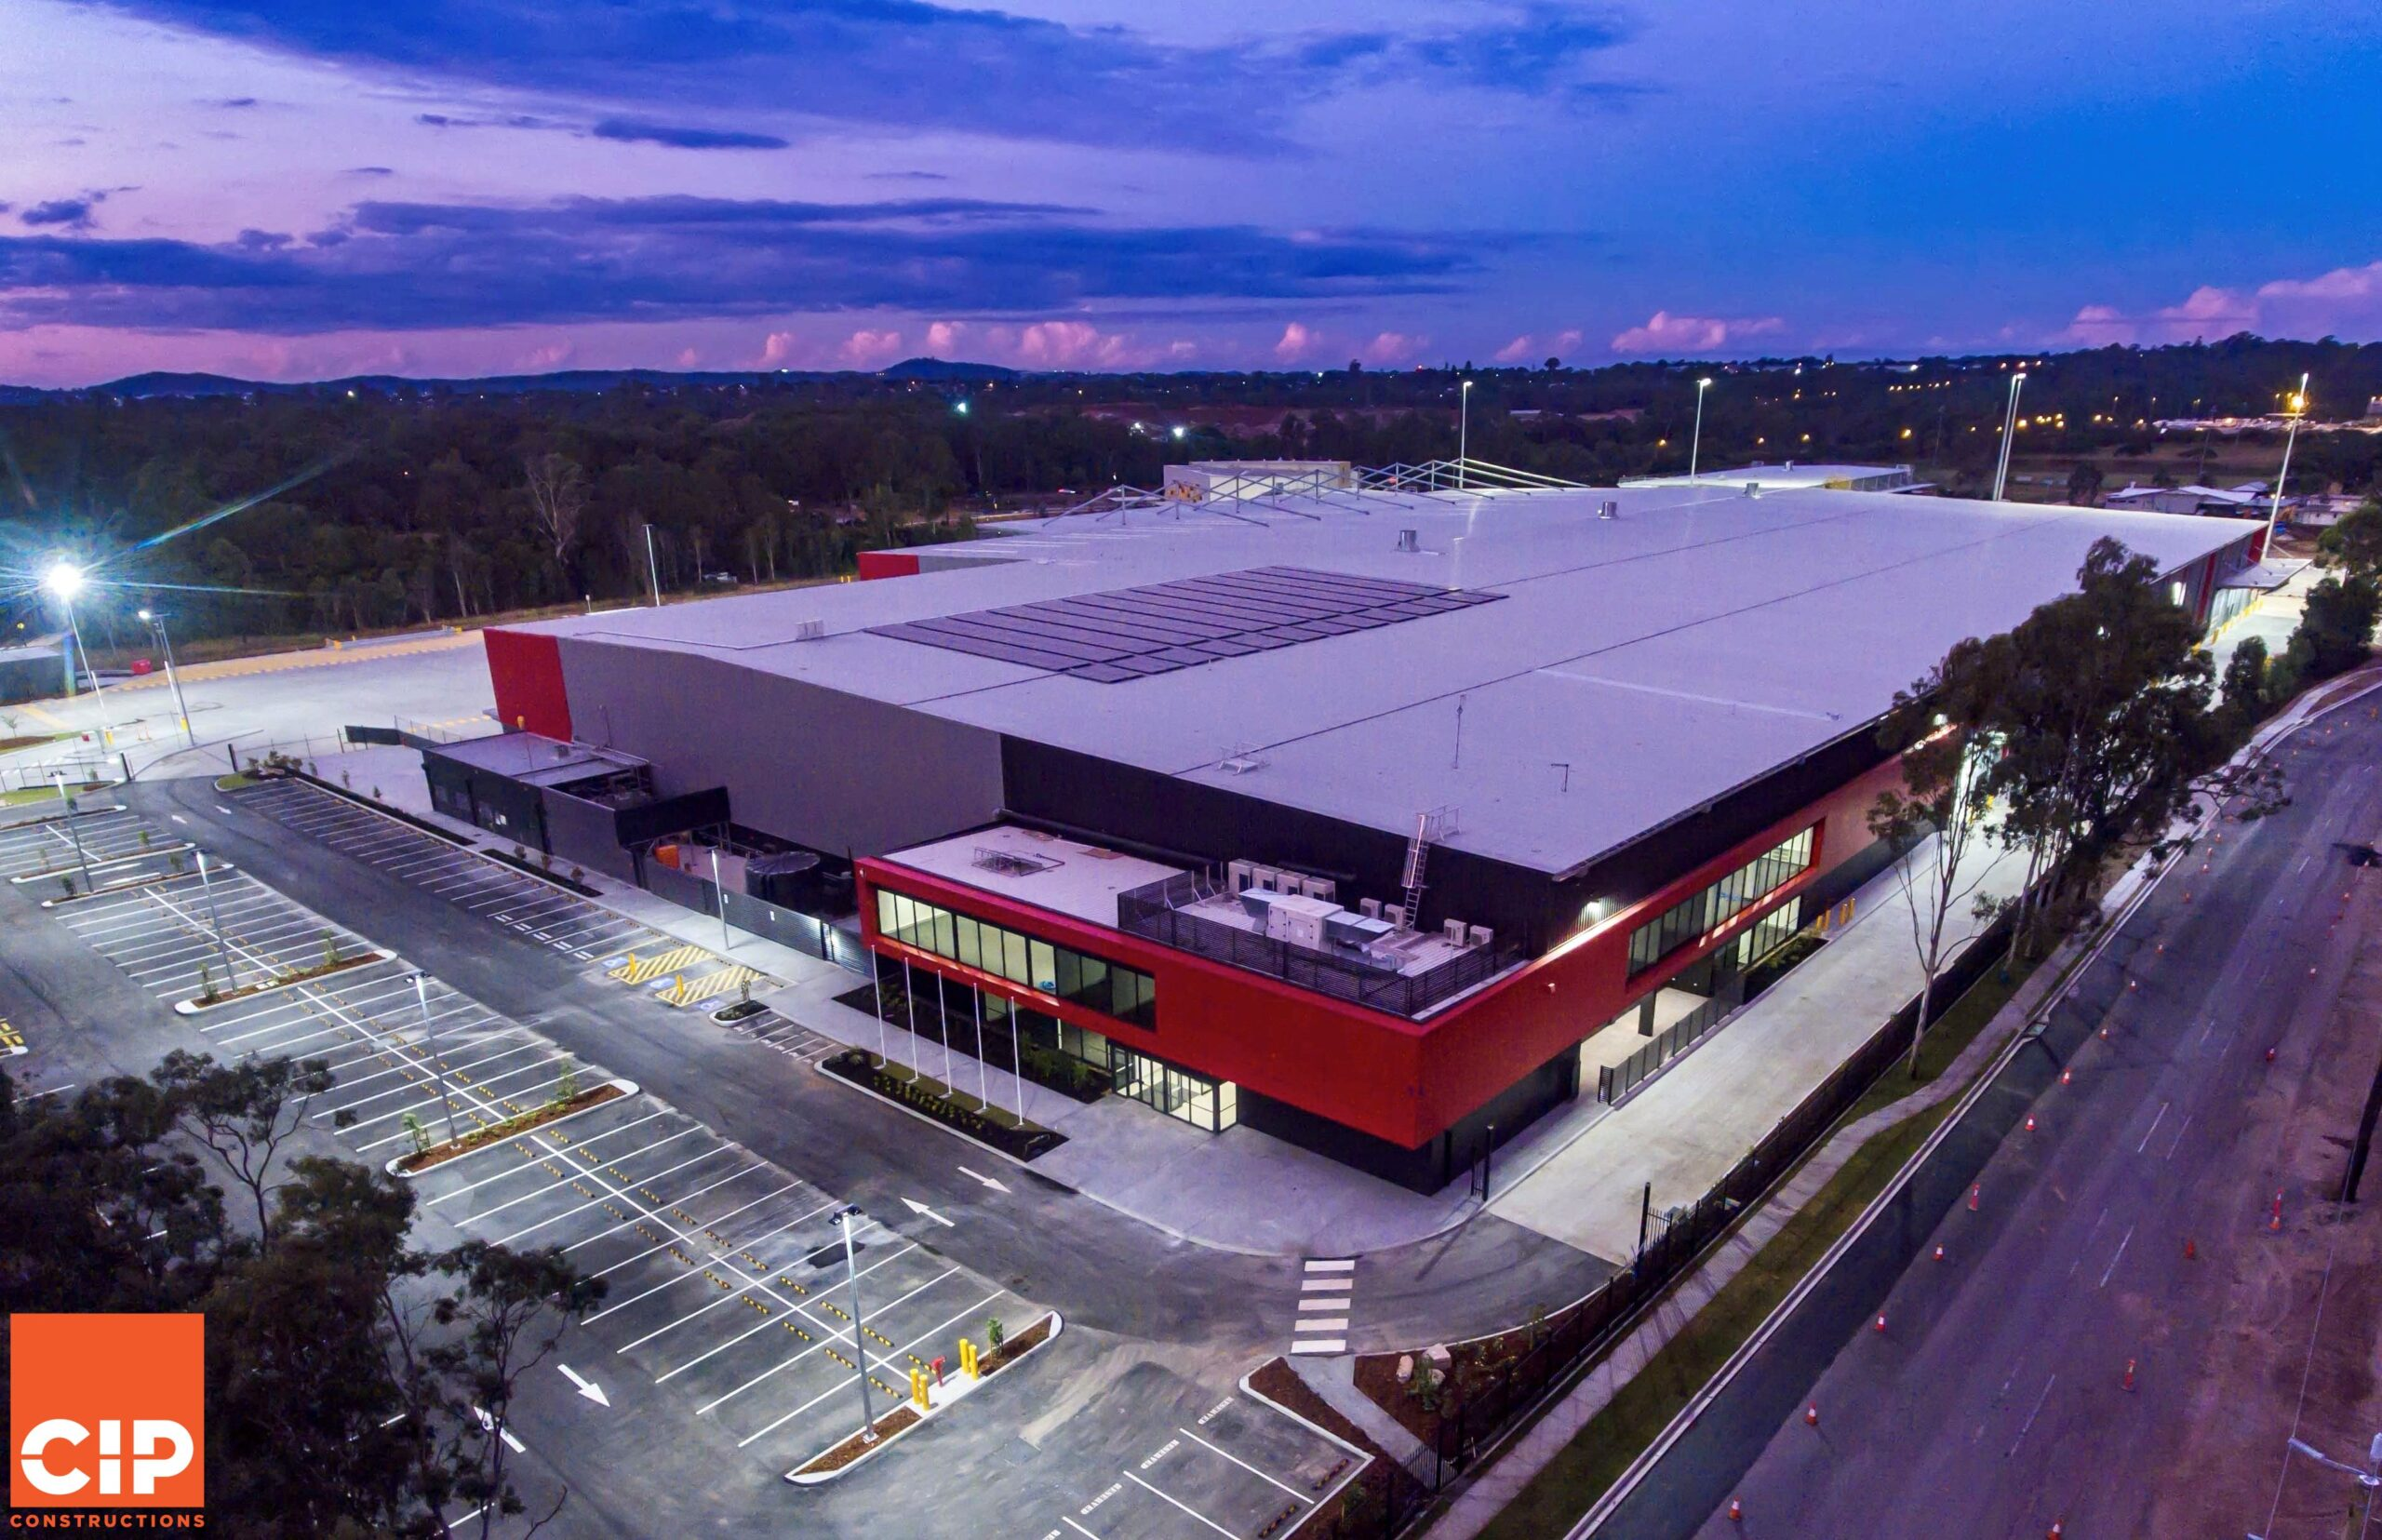 Green Building Council of Australia awards CIP Constructions 5 Star Green Star rating for Linfox facility in Willawong, QLD.